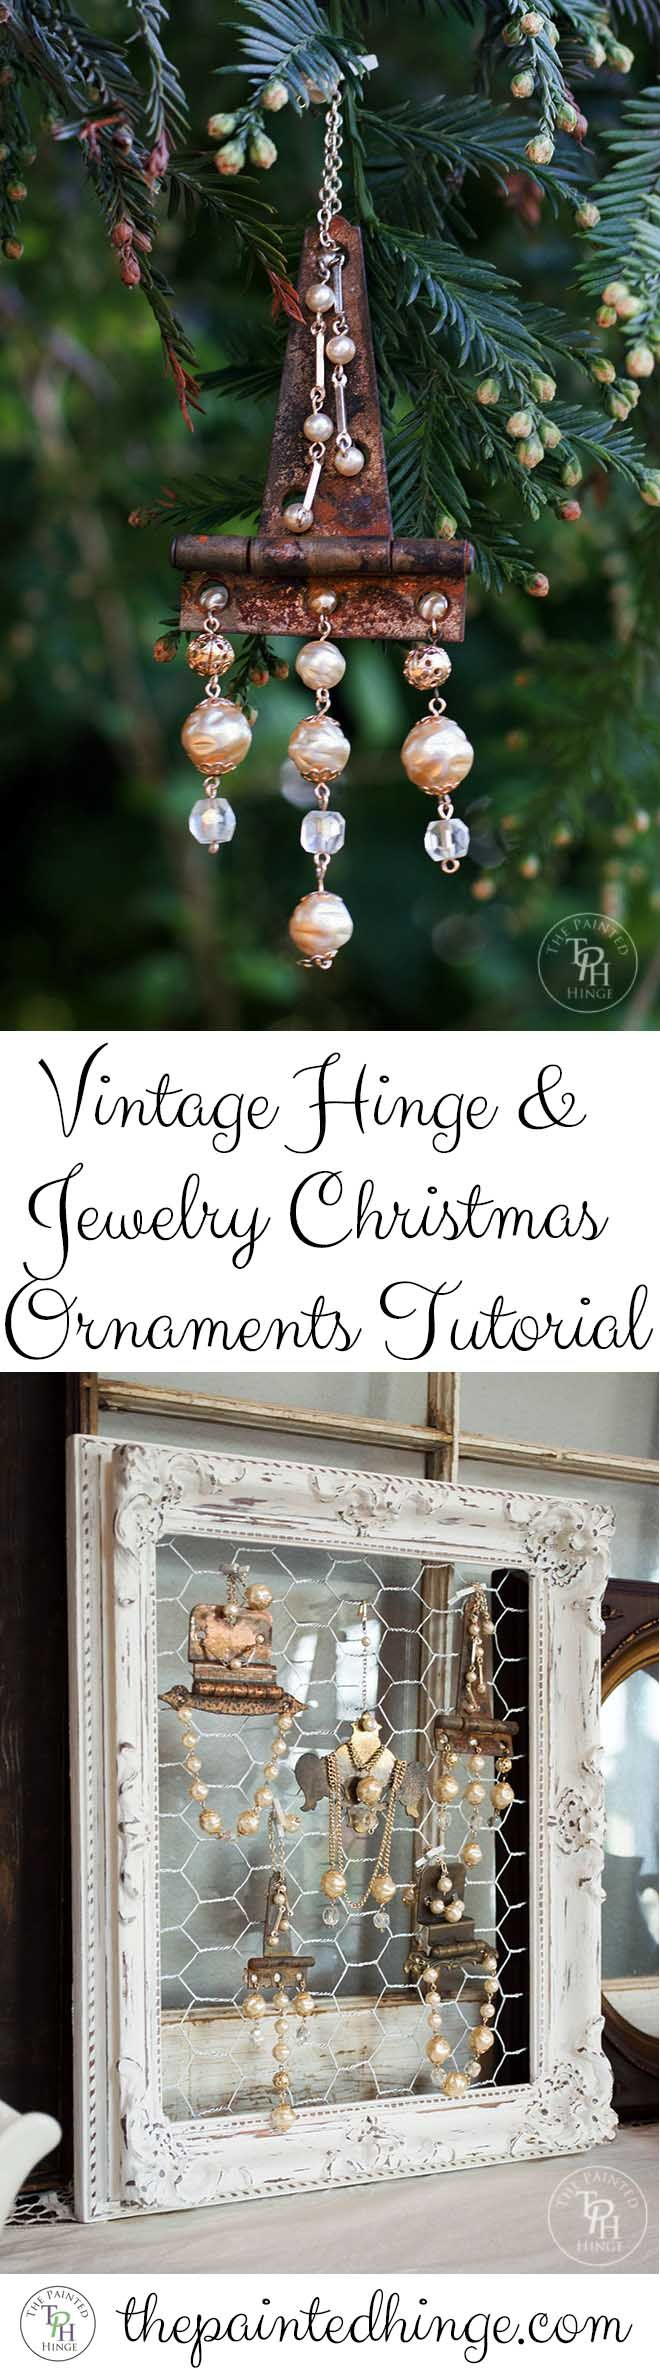 Vintage Hinge & Jewelry Christmas Ornaments DIY Tutorial!